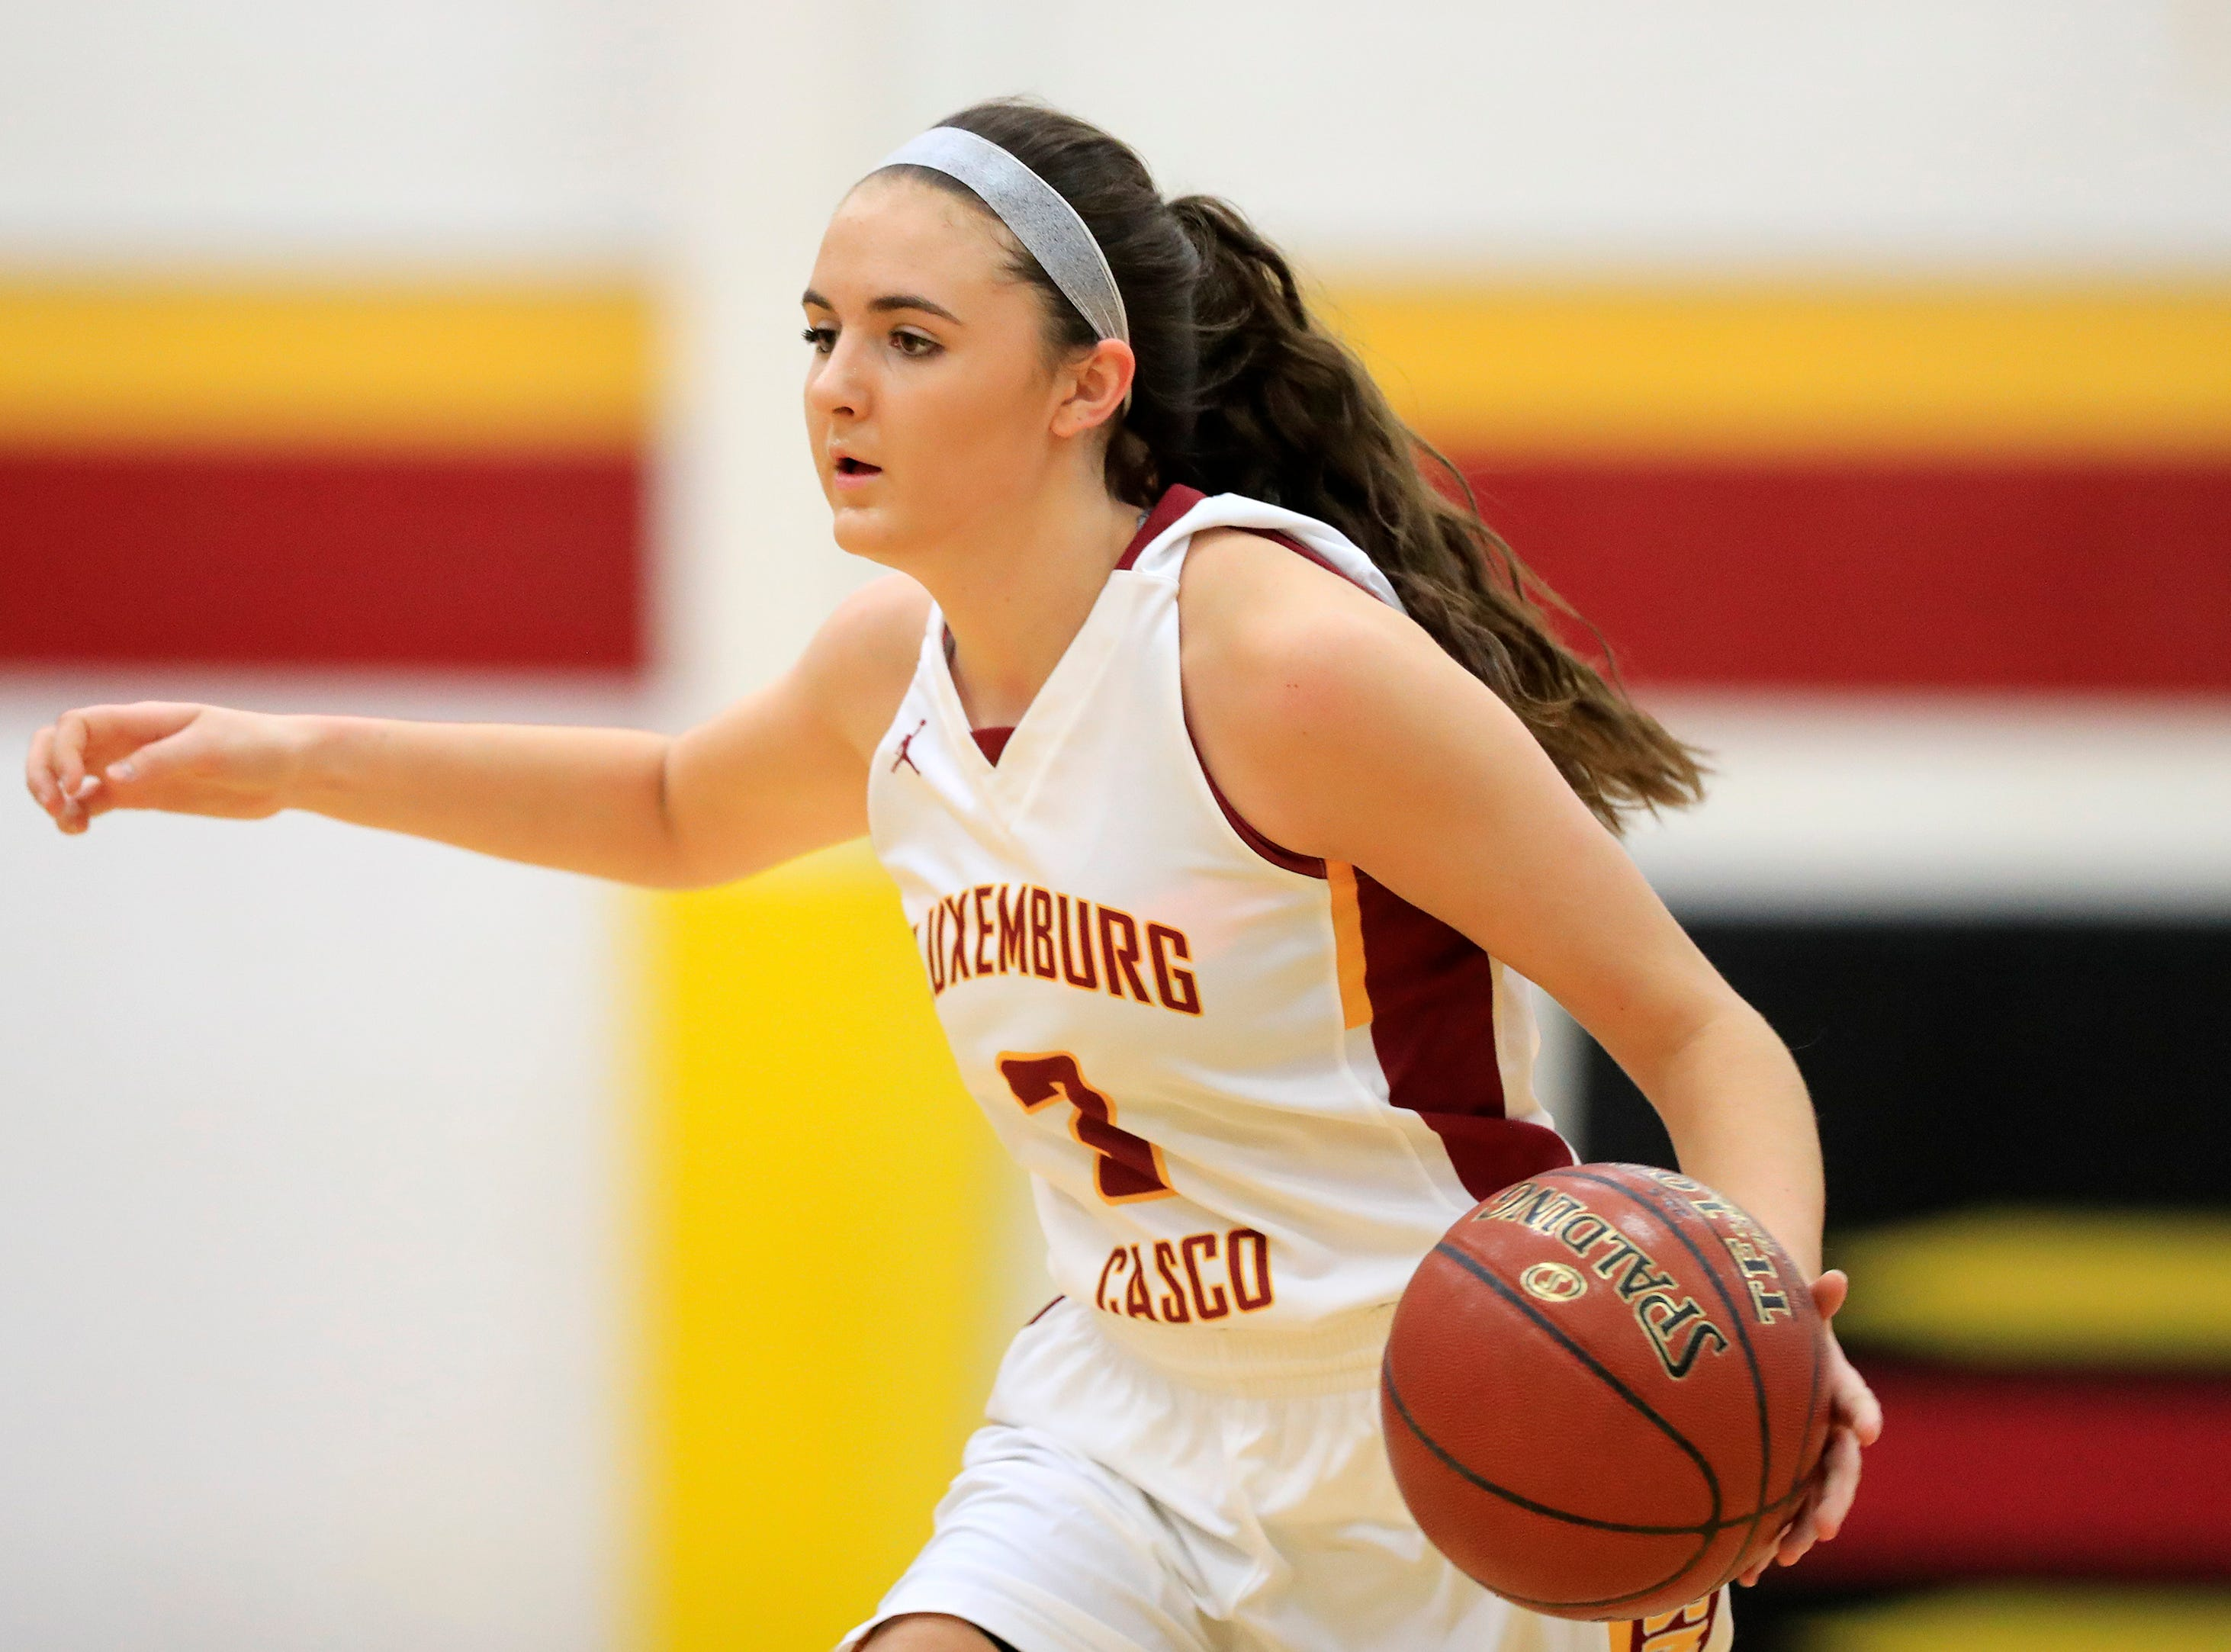 Luxemburg-Casco's Cassie Schiltz (3) brings the ball up the court against Waupaca in a girls basketball game at Luxemburg-Casco high school on Thursday, January 10, 2019 in Luxemburg, Wis.